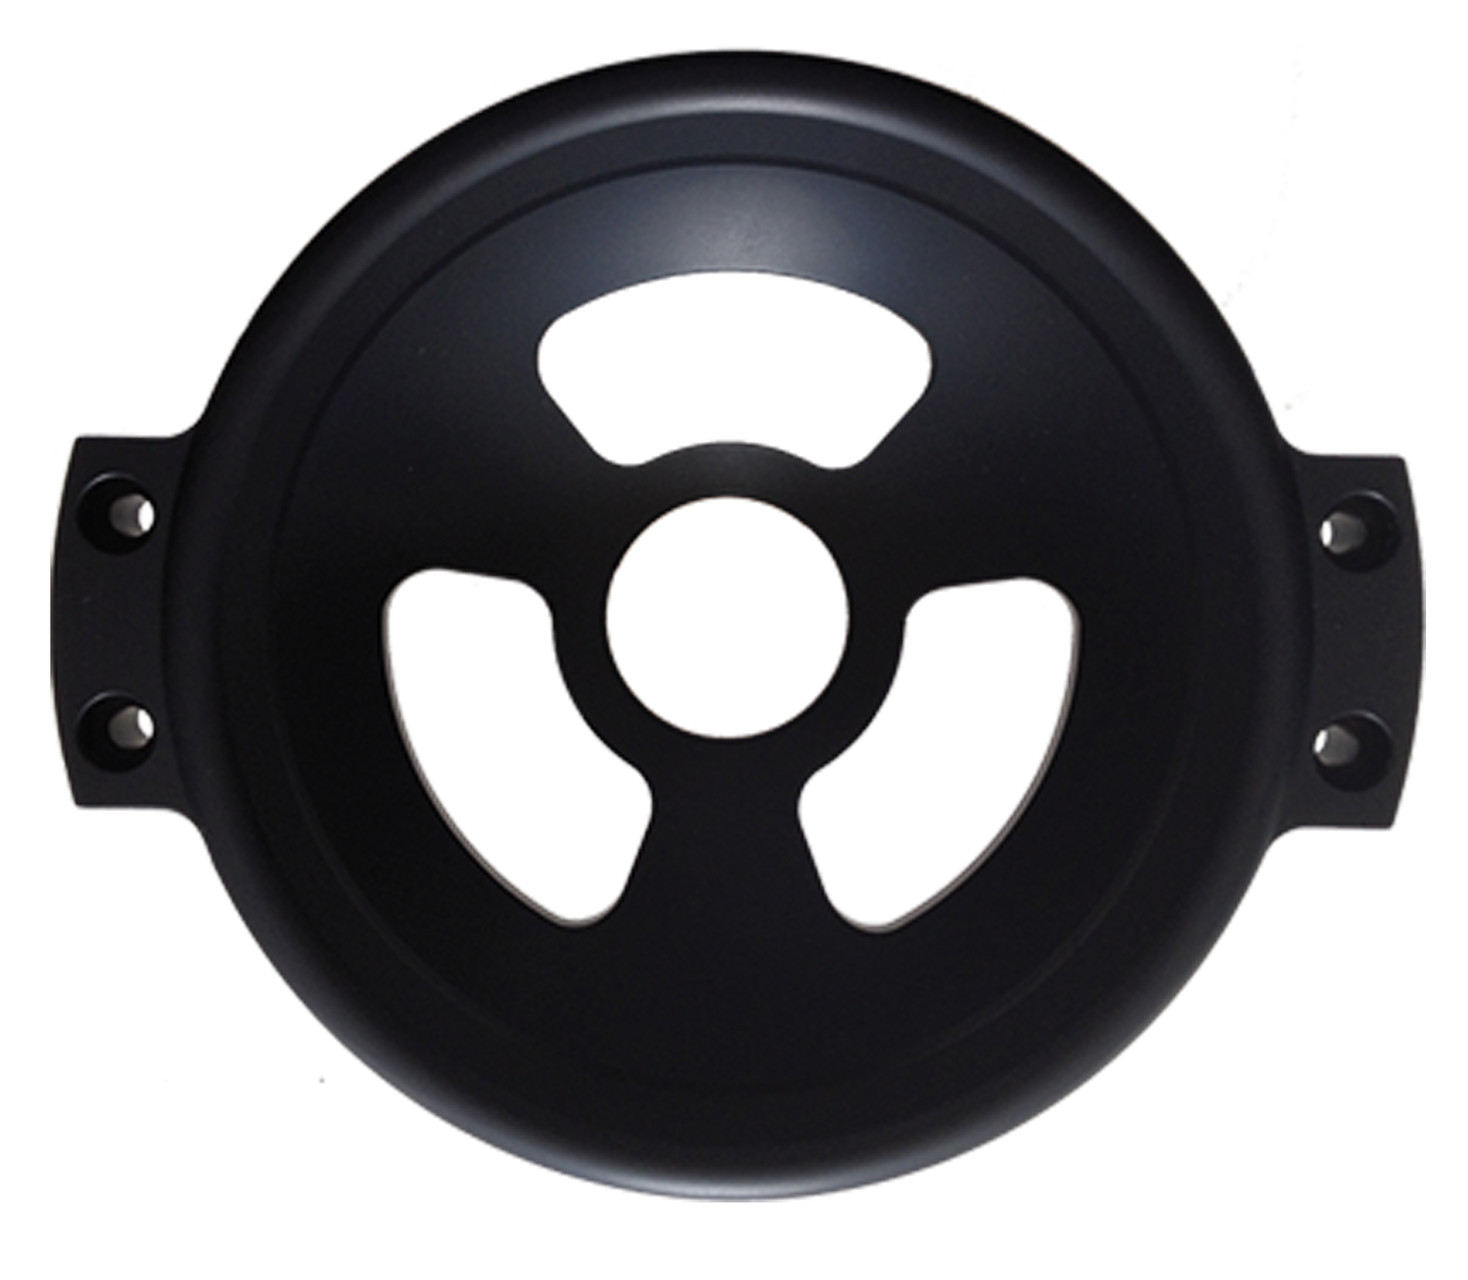 150mm Bowl (PS150M) can be mounted instead of the 100mm bowl but requires 2 spacers underneath